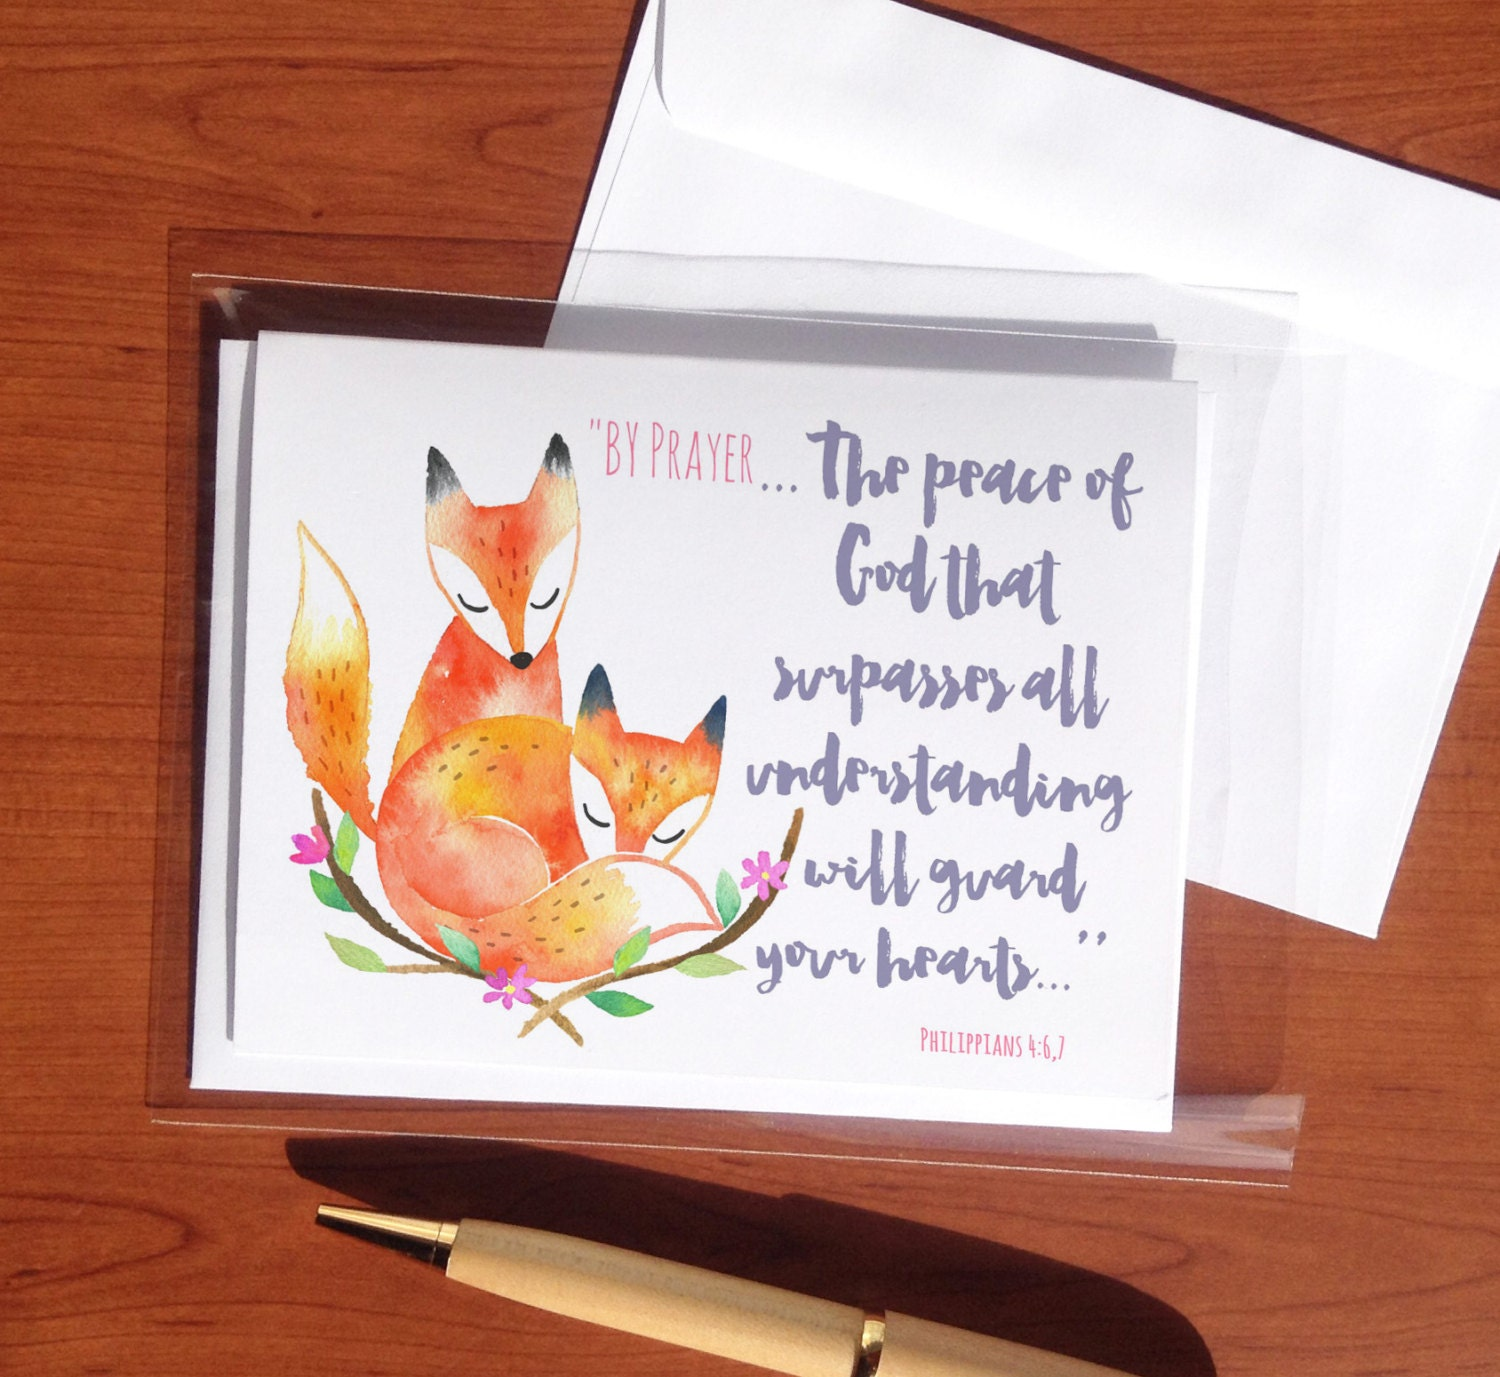 Peaceful by prayer jw greeting cards